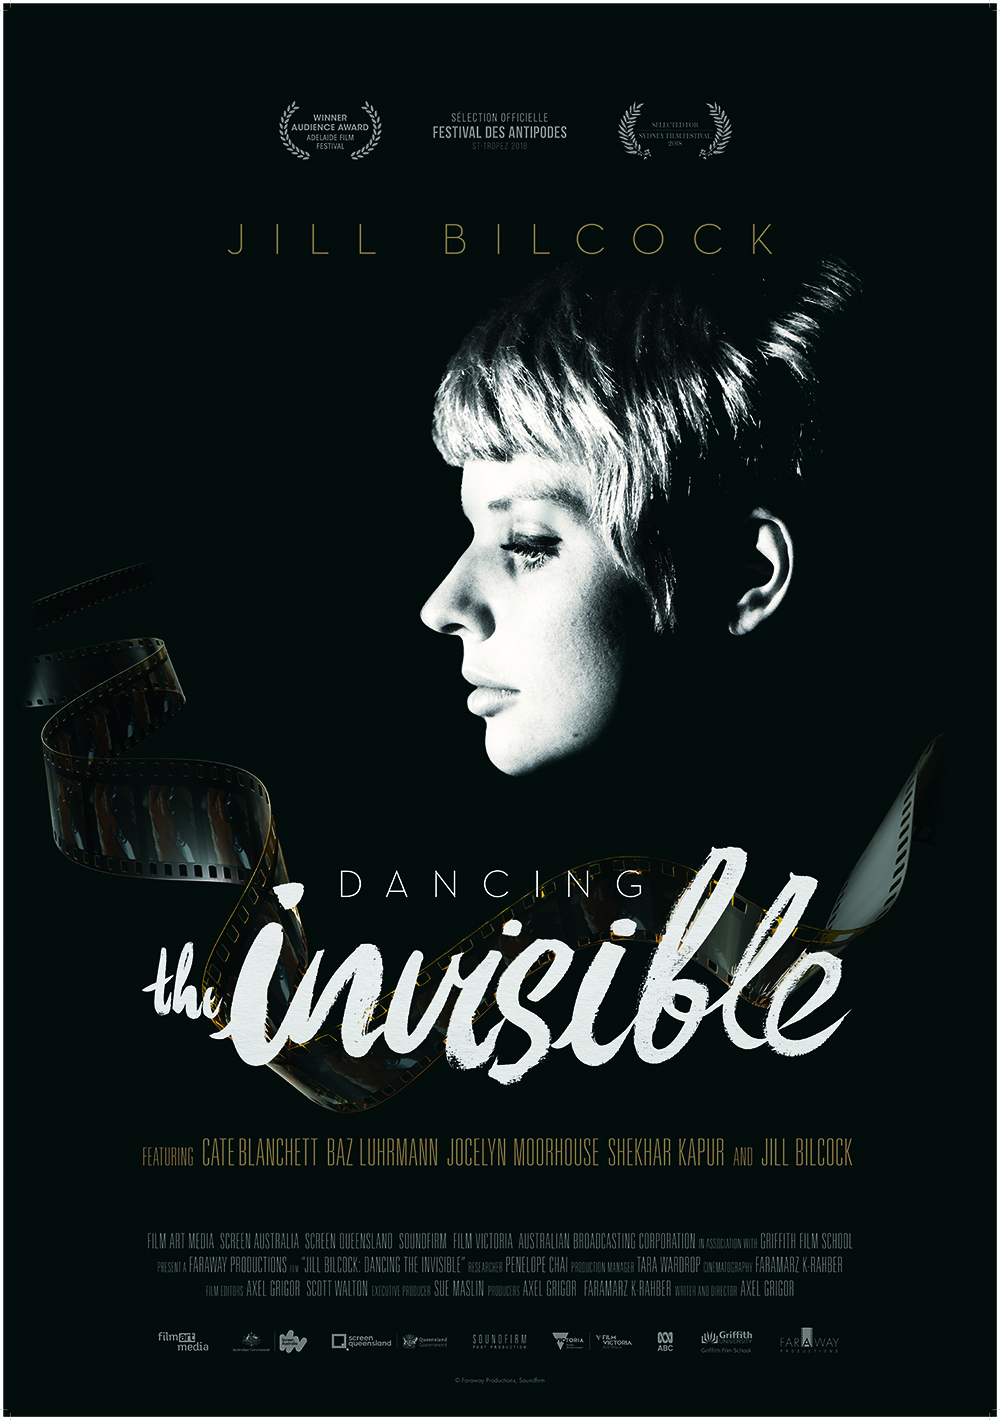 JILL BILCOCK: DANCING THE INVISIBLE set for theatrical release in Australia